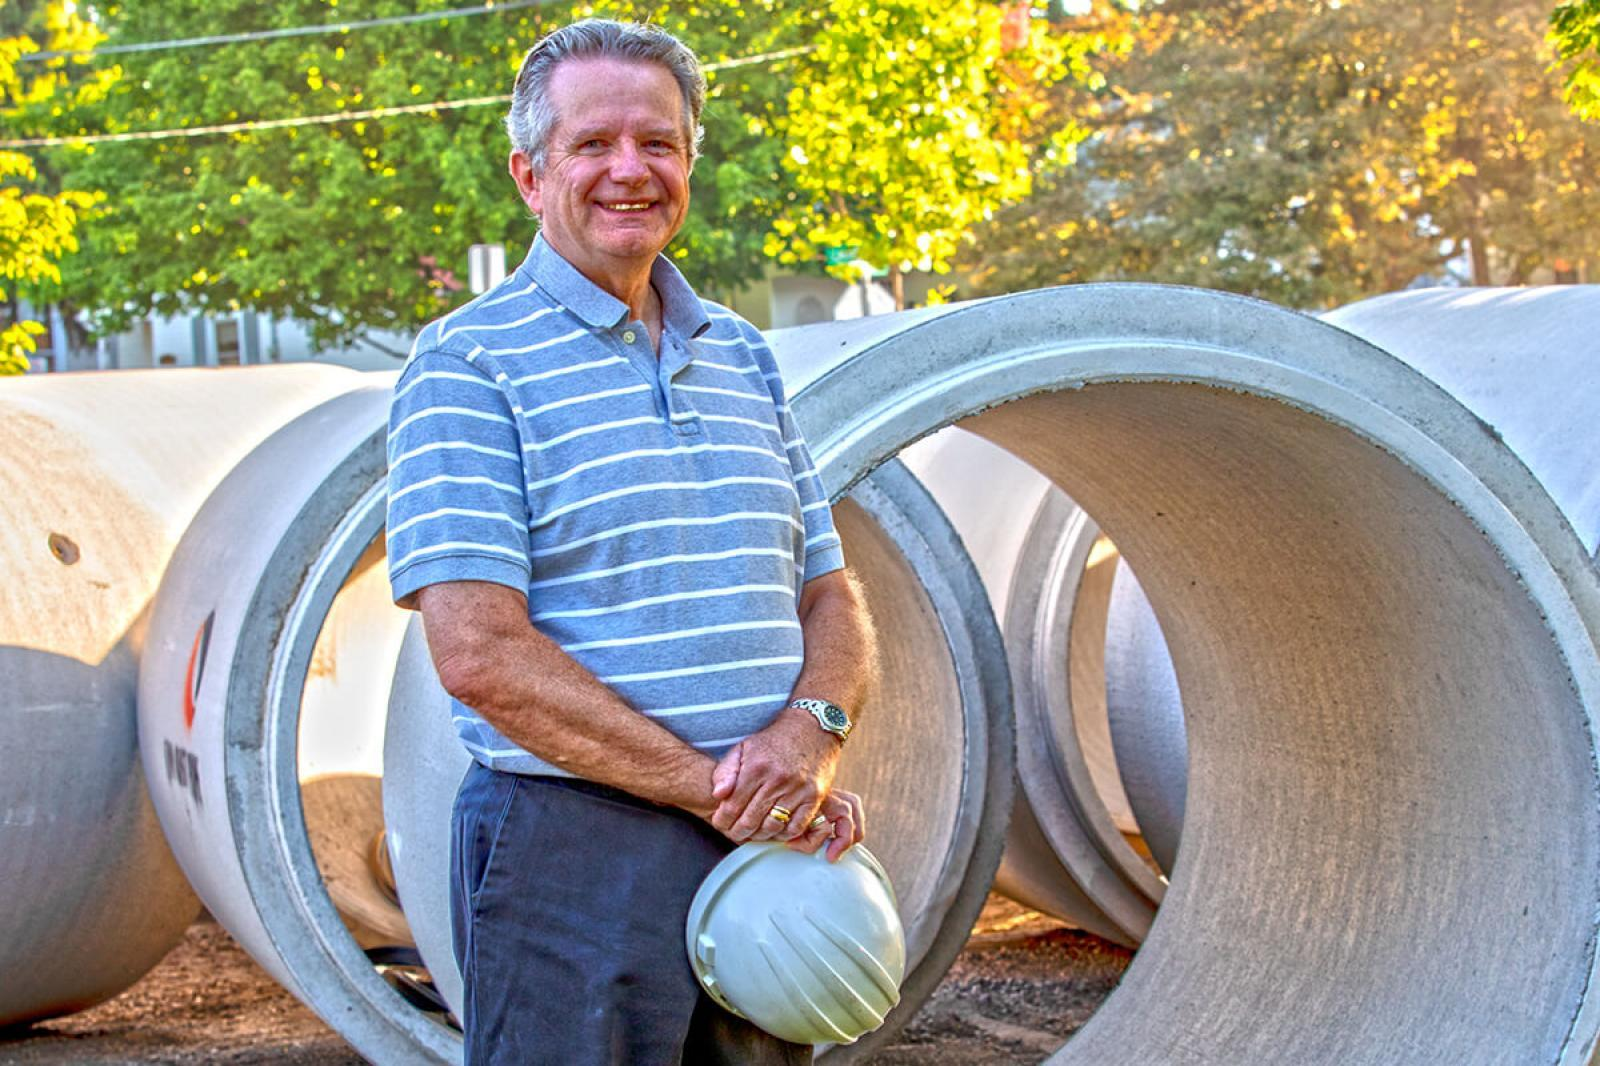 Landscape architect Ron Koudys has always believed in a bright, green future.